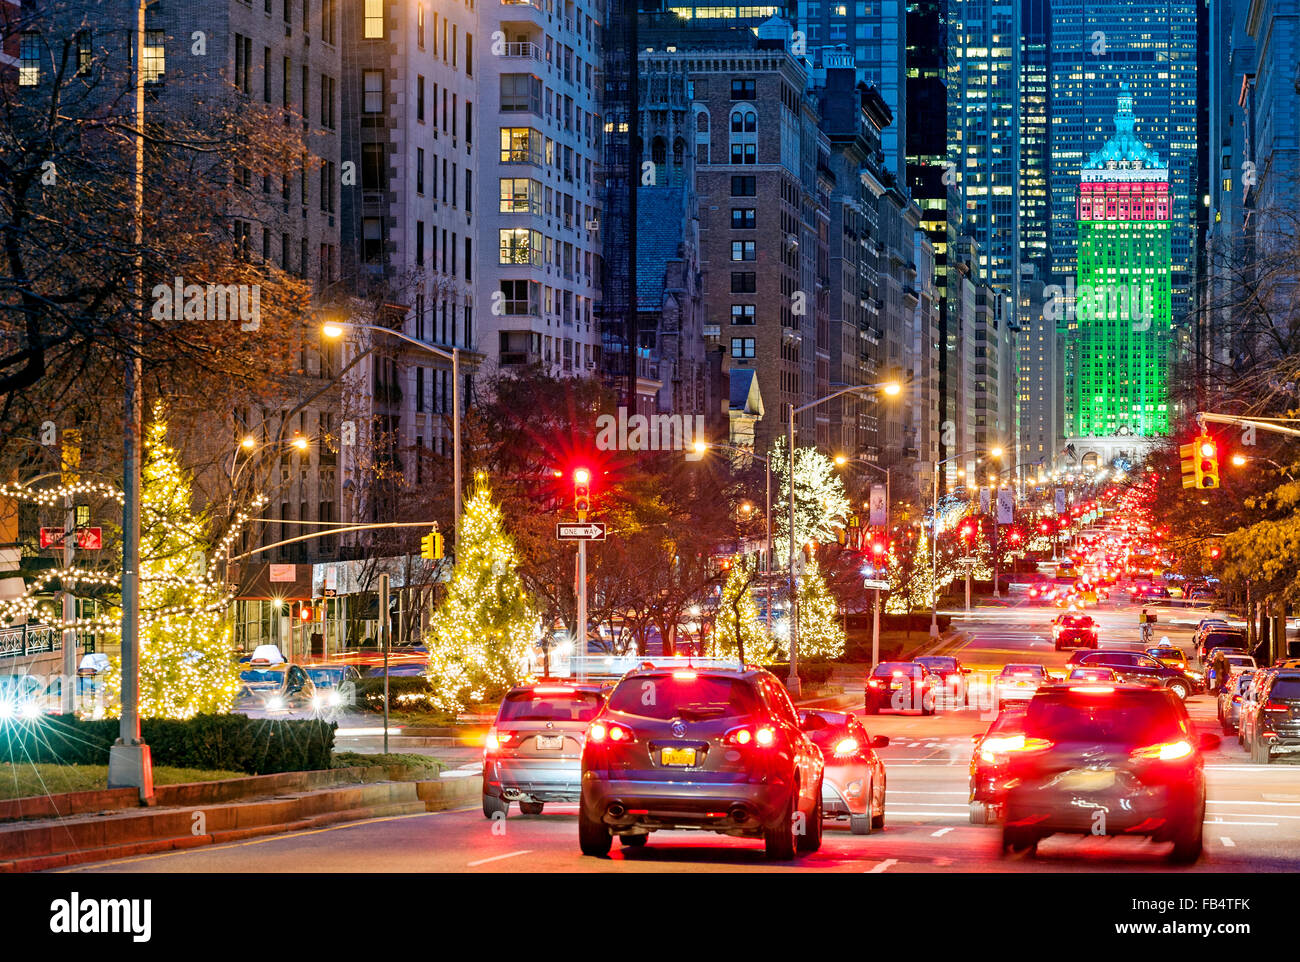 new york christmas new york street park avenue decorations new york stock photo 92920119 alamy. Black Bedroom Furniture Sets. Home Design Ideas